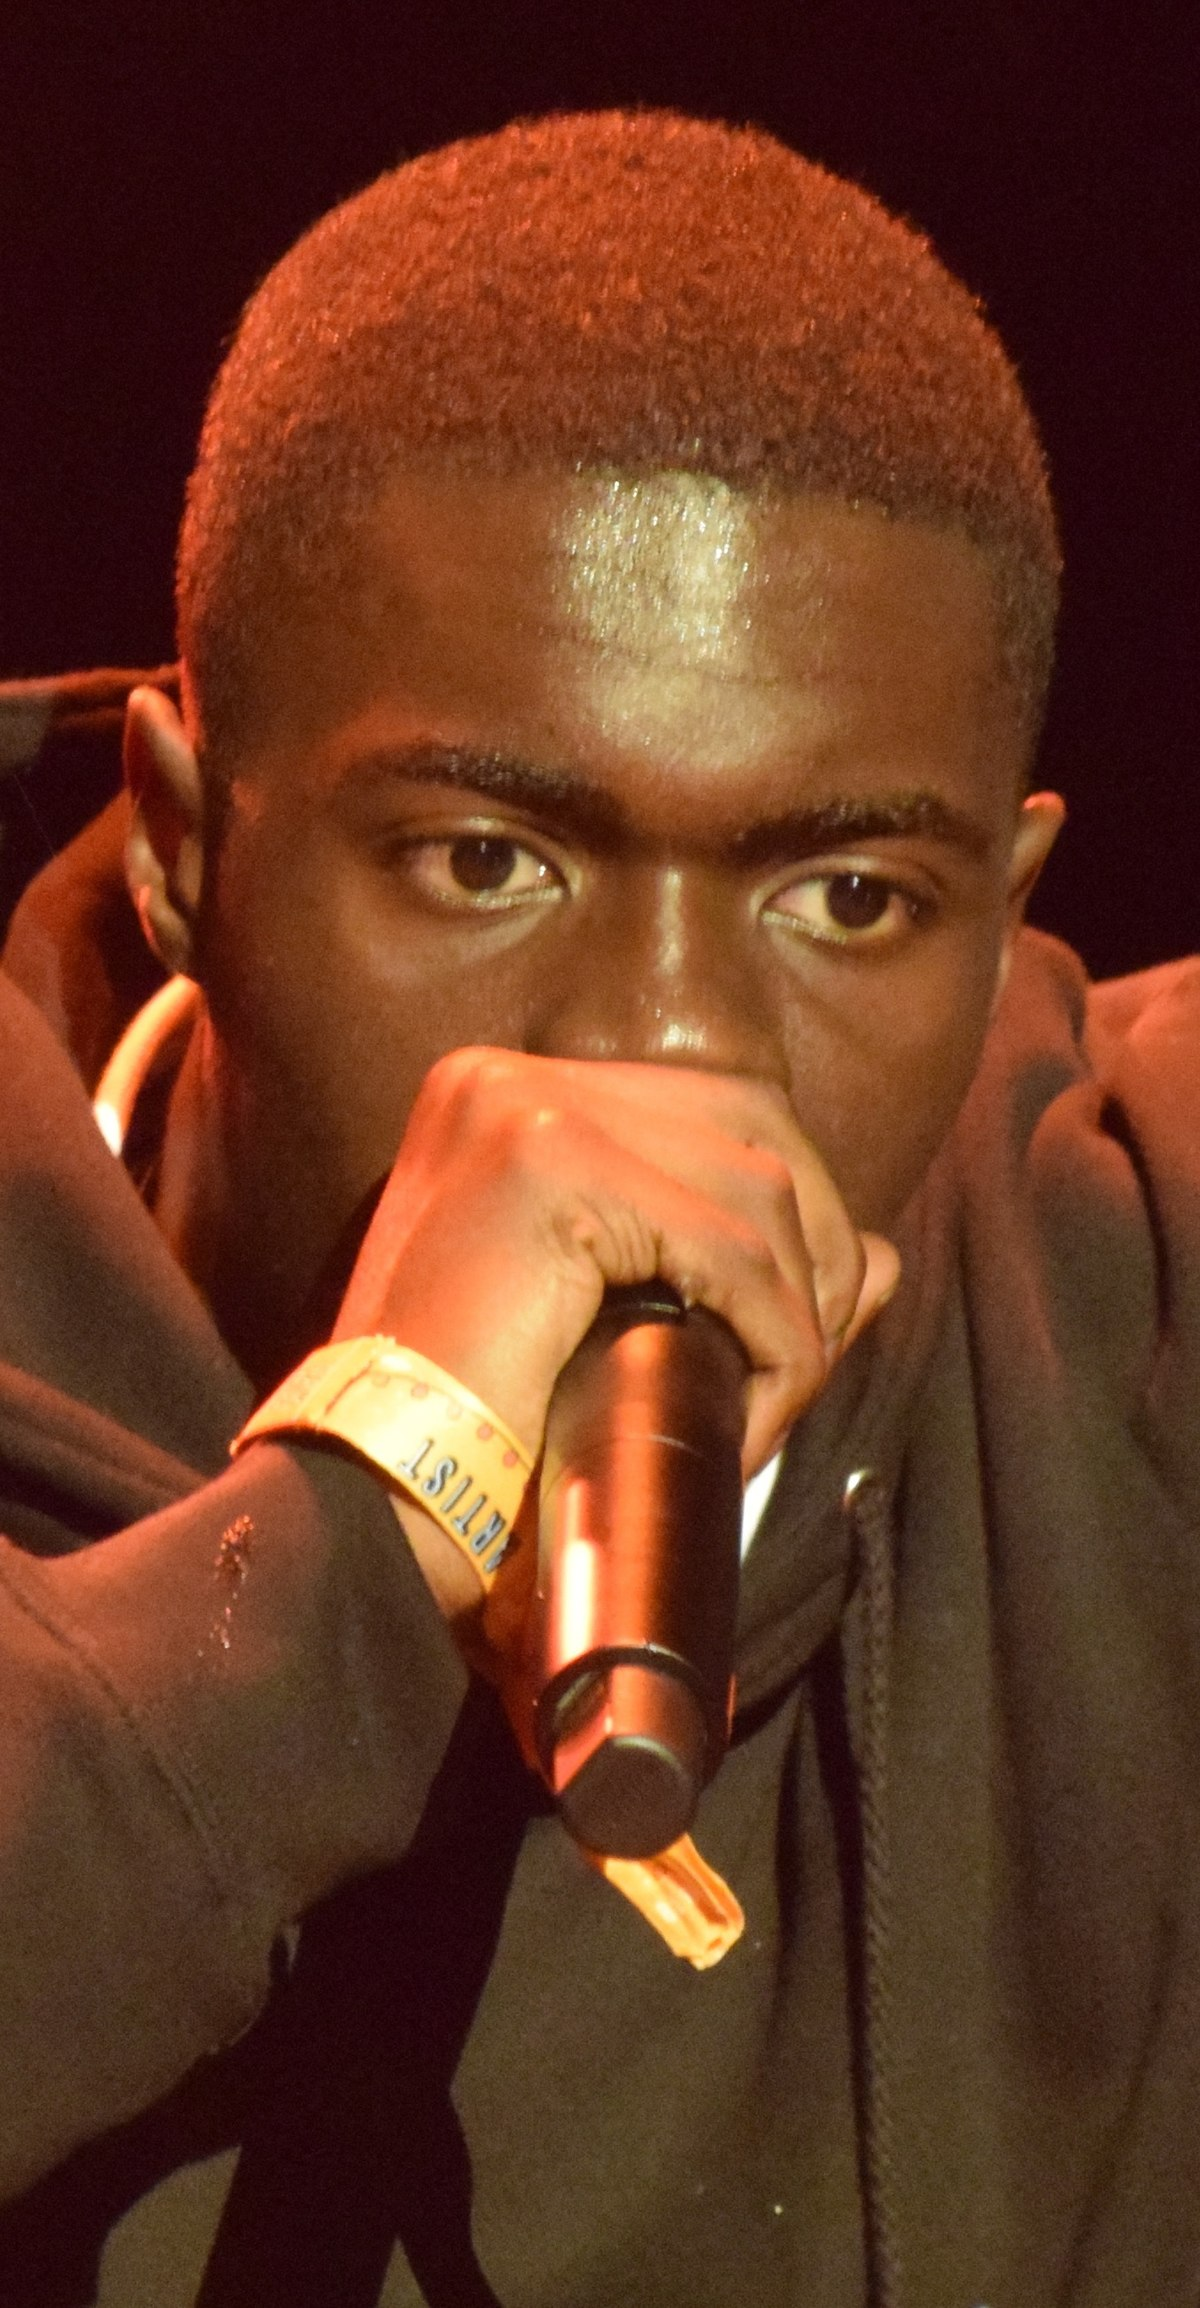 Sheck Wes - Wikipedia